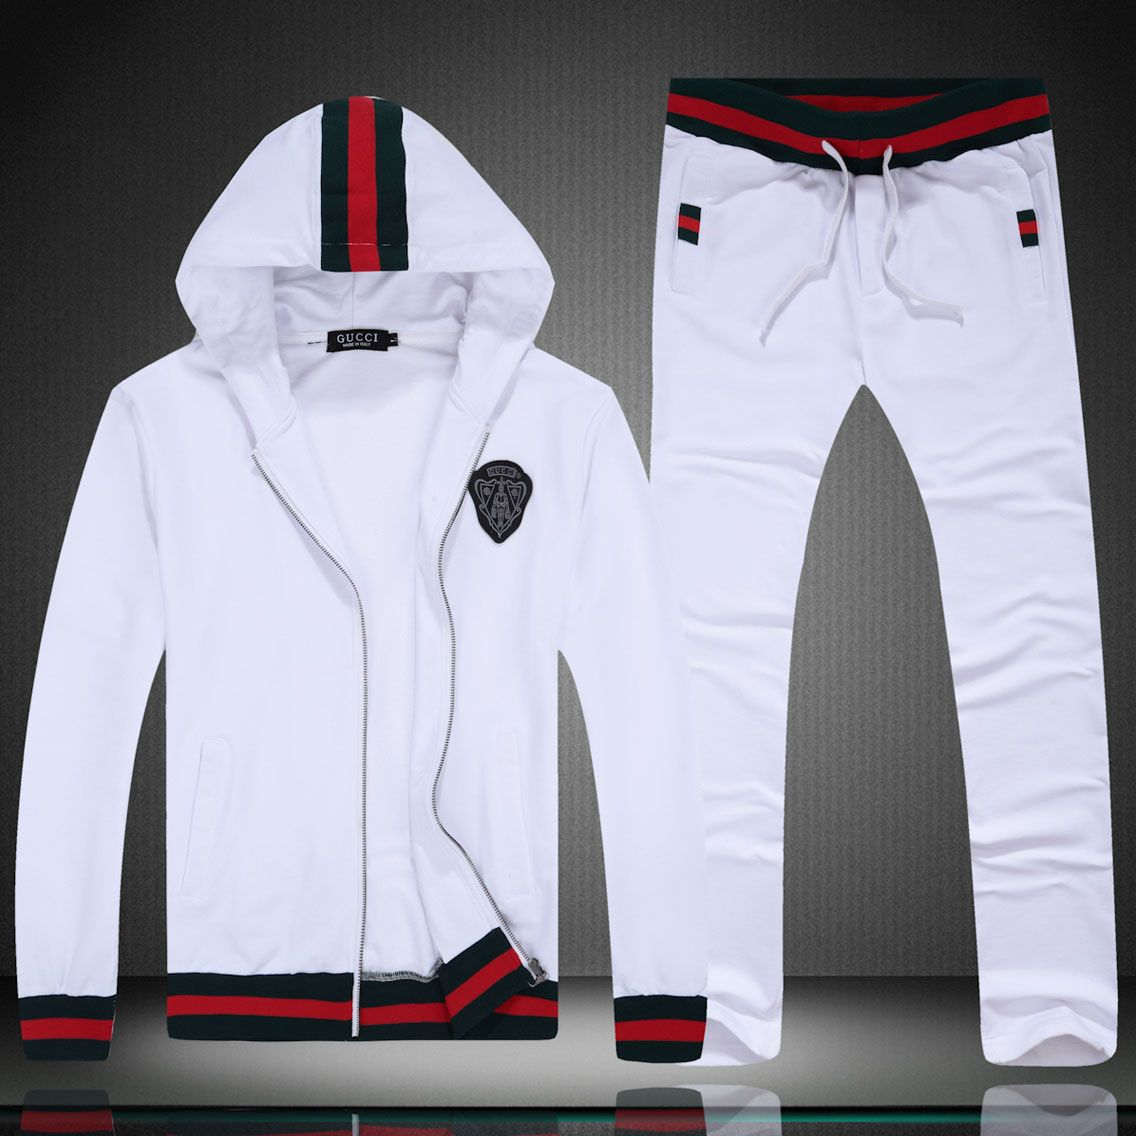 4d79a5704d8 Replica cheap outlet Gucci Tracksuits for MEN  199328